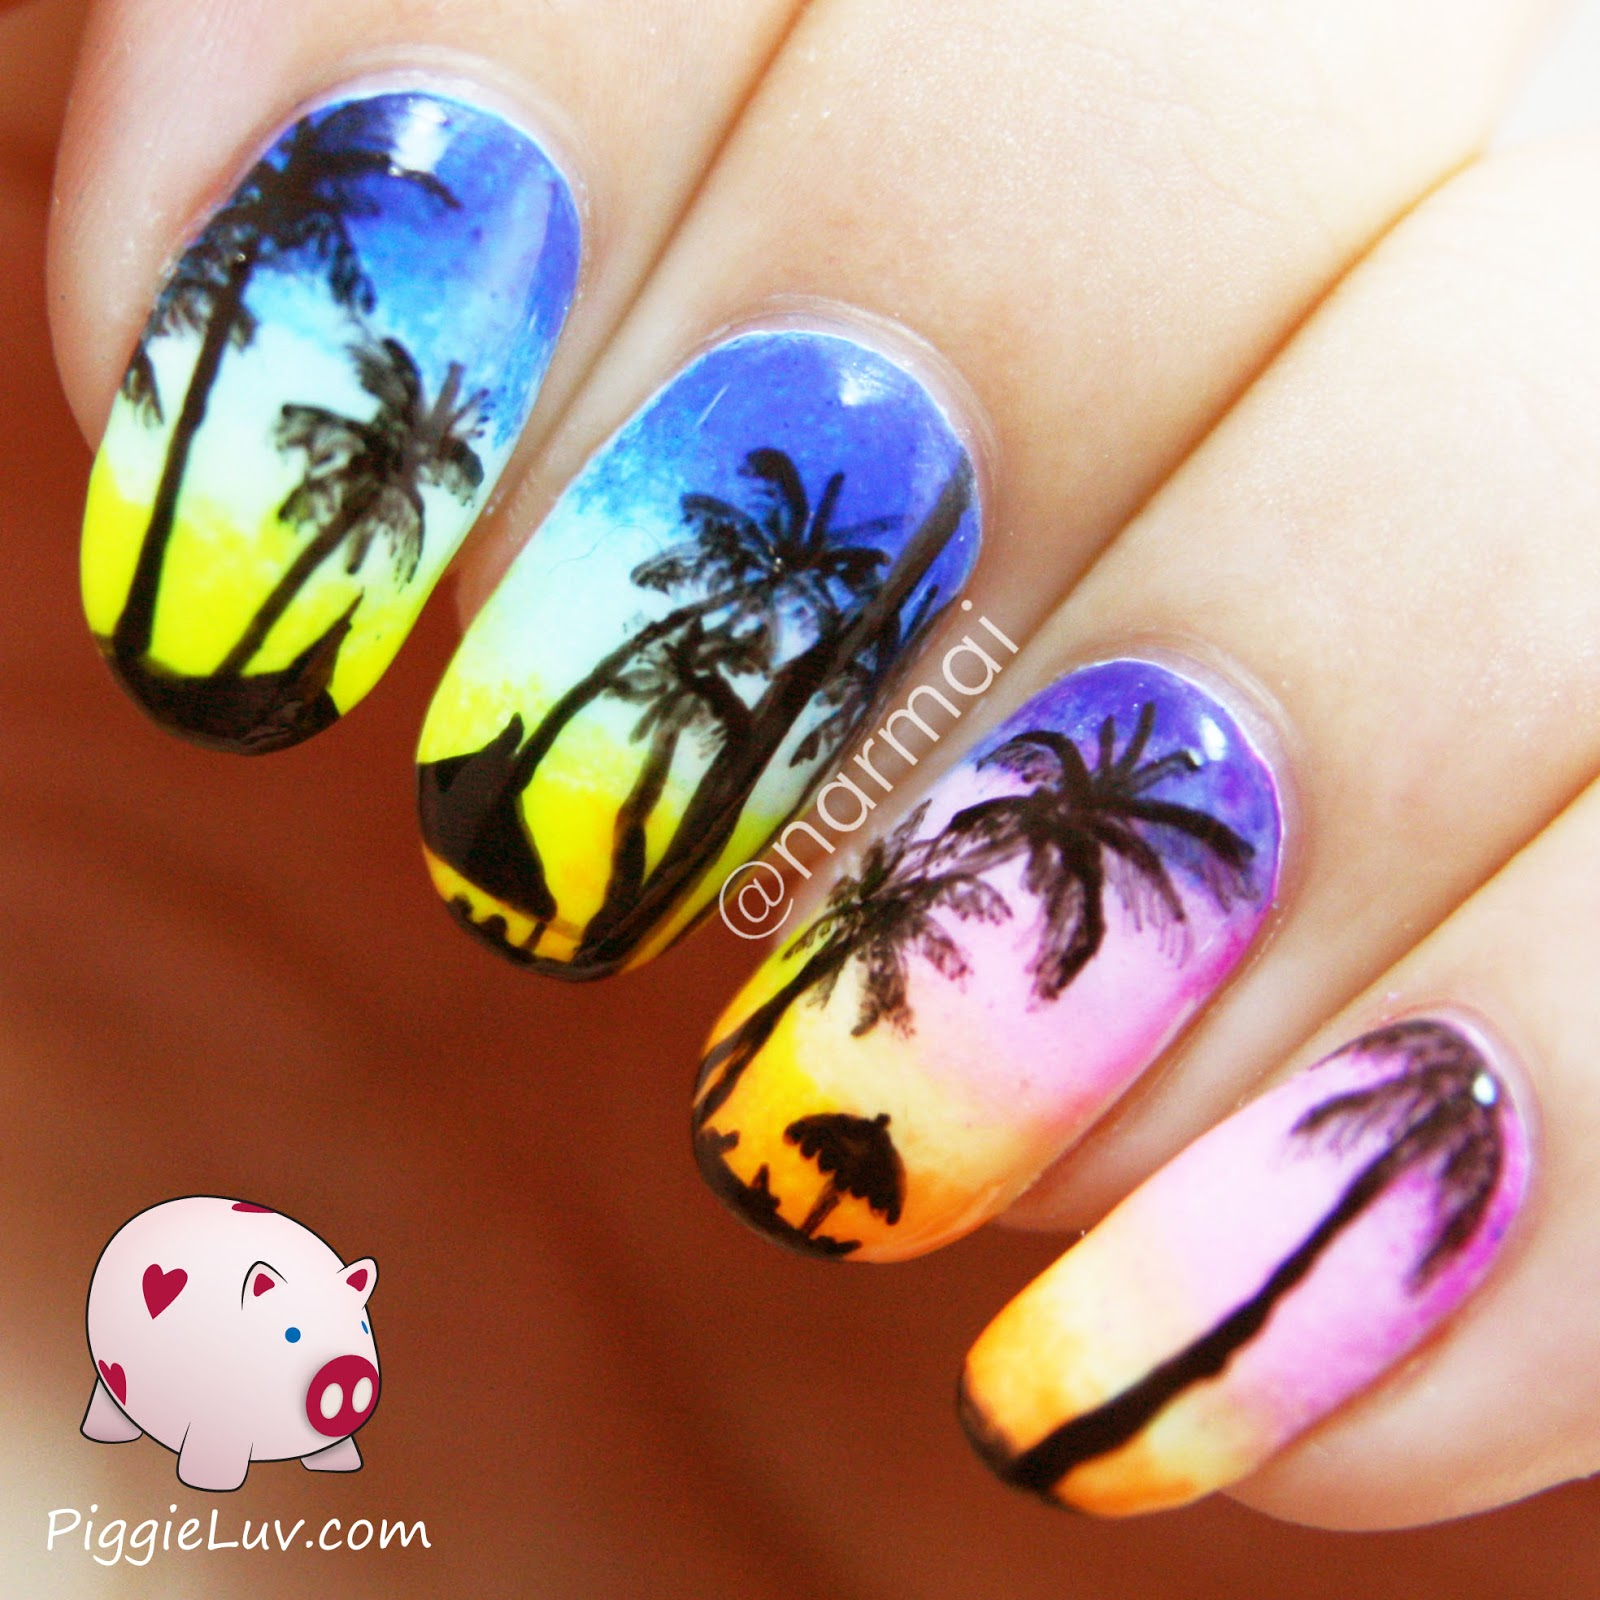 Piggieluv tropical beach at sunset nail art glow in the dark tropical beach at sunset nail art glow in the dark video tutorial prinsesfo Gallery